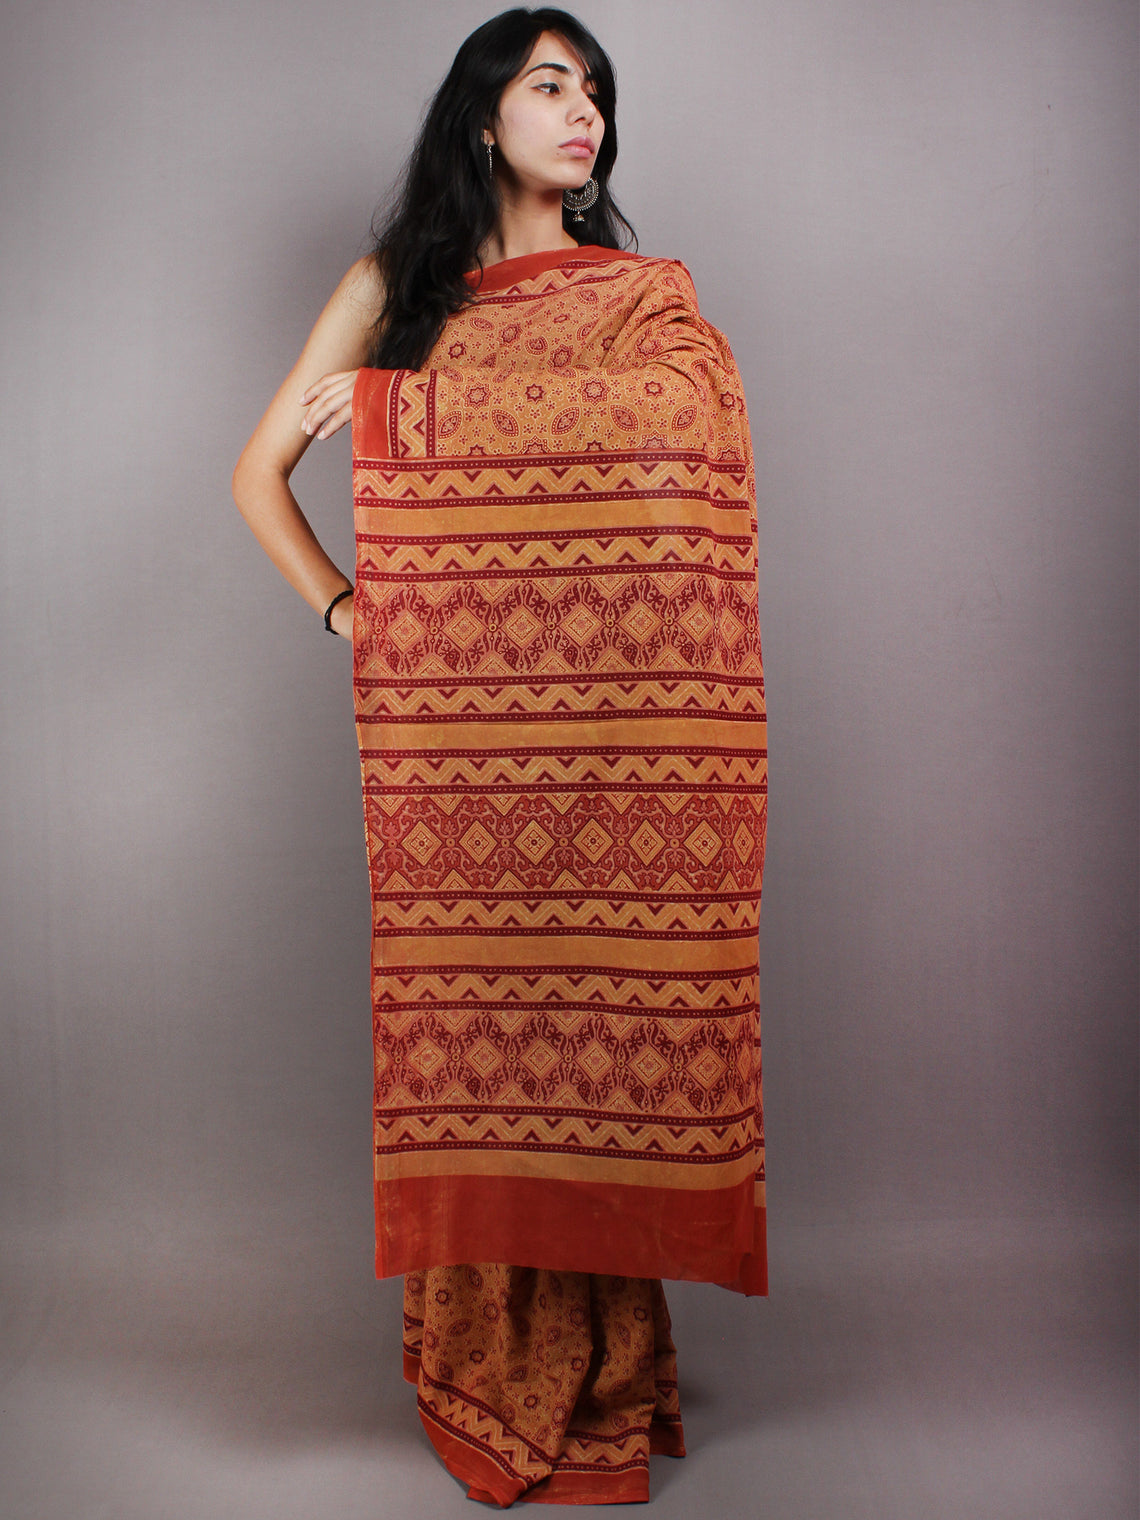 Scarlet Red Mustard Mughal Nakashi Ajrakh Hand Block Printed in Natural Vegetable Colors Cotton Mul Saree - S03170581